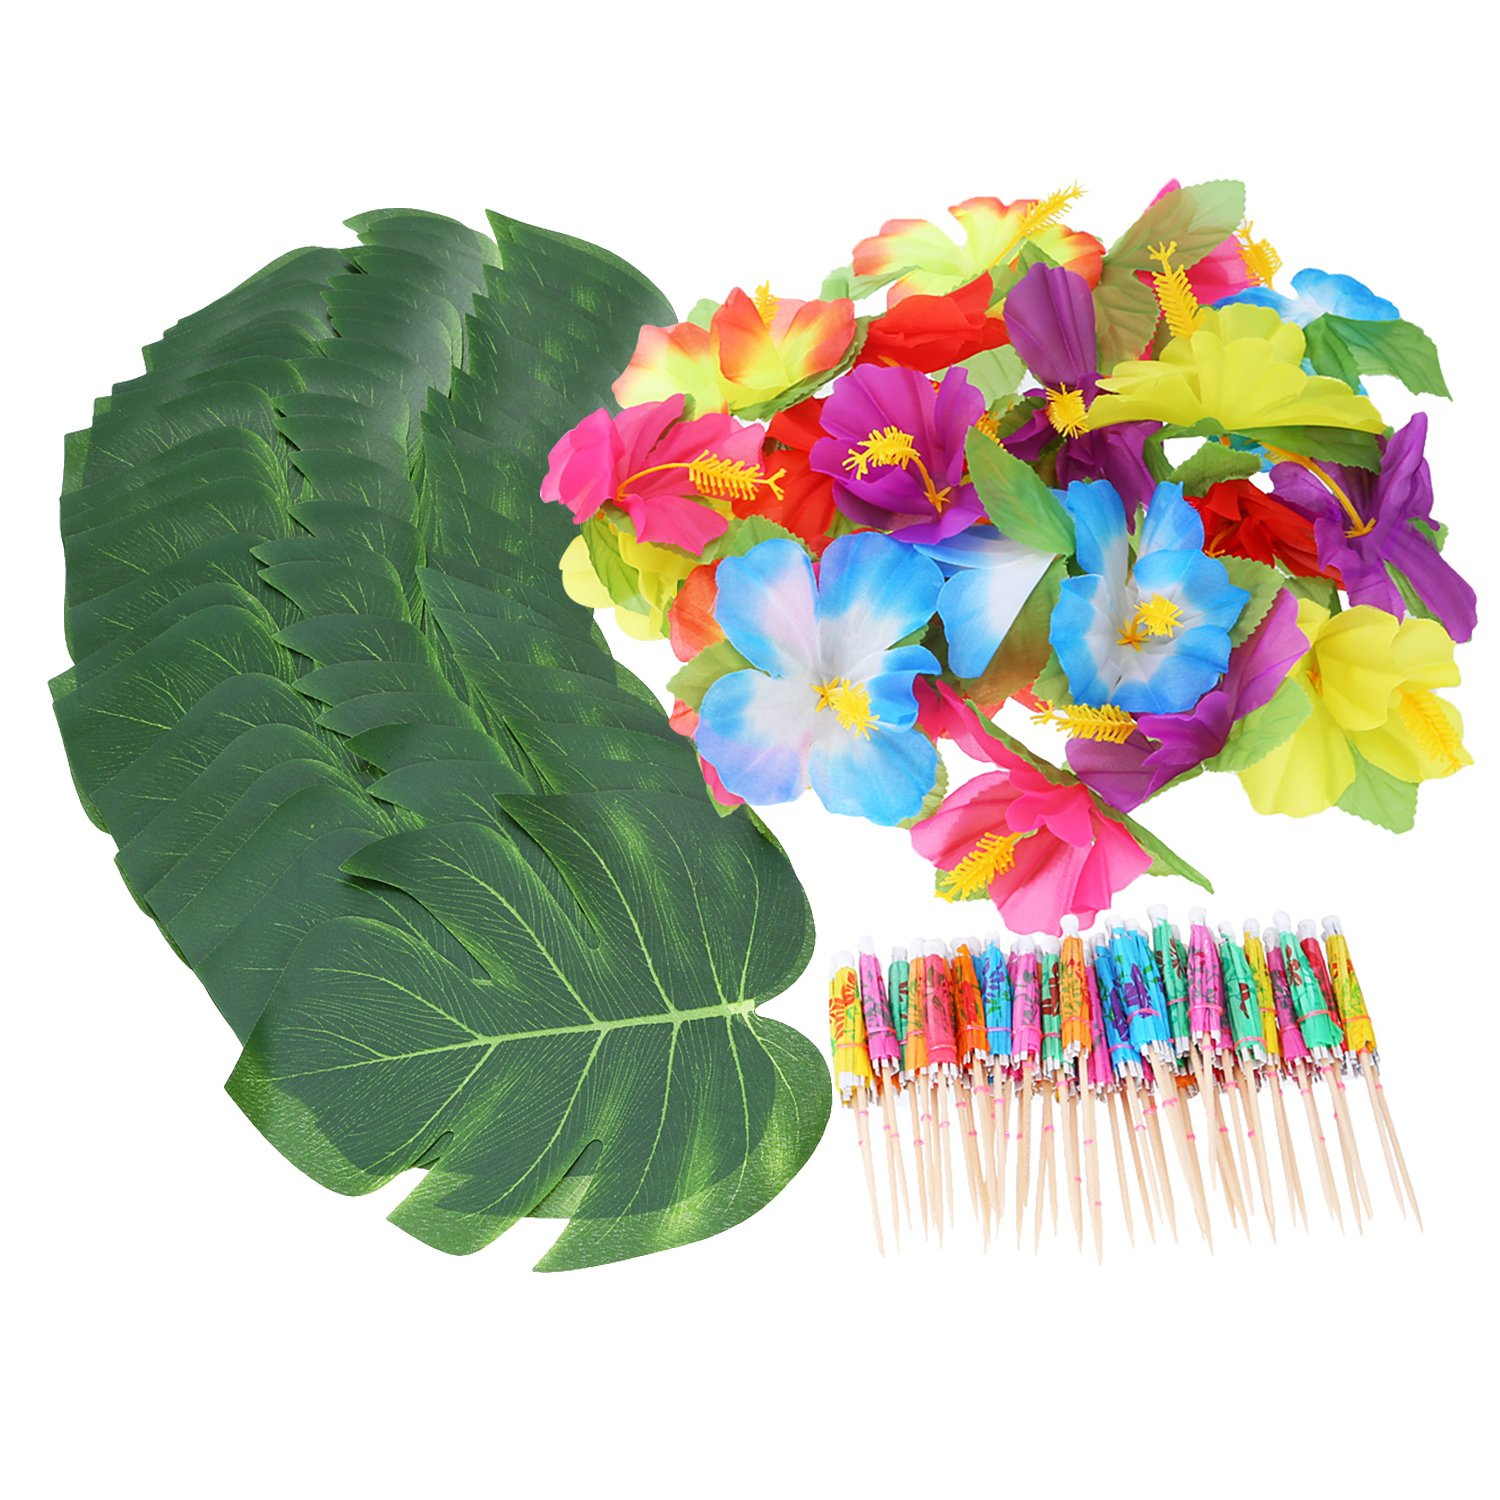 Shappy 98 Pieces Hawaiian Luau Theme Party Decorations, Including 24 Pieces Tropical Palm Leaves, 24 Pieces Luau Flowers and 50 Pieces Multi-color Umbrellas by Shappy